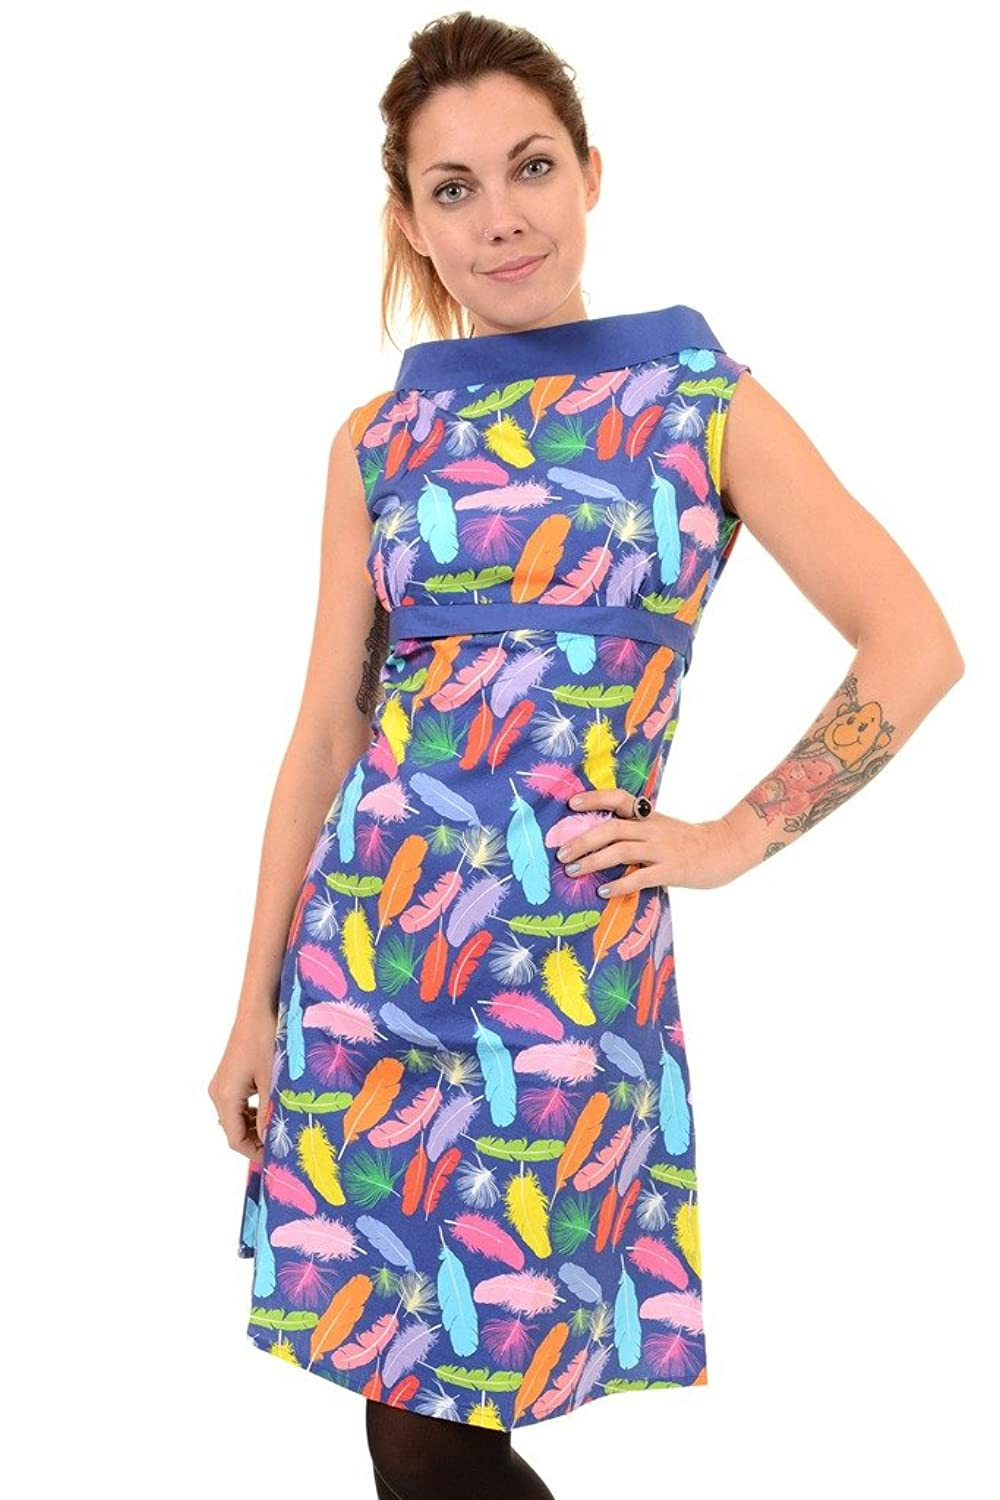 500 Vintage Style Dresses for Sale Ladies Run & Fly 60s Retro Feather Me Up A-Line Dress $16.95 AT vintagedancer.com